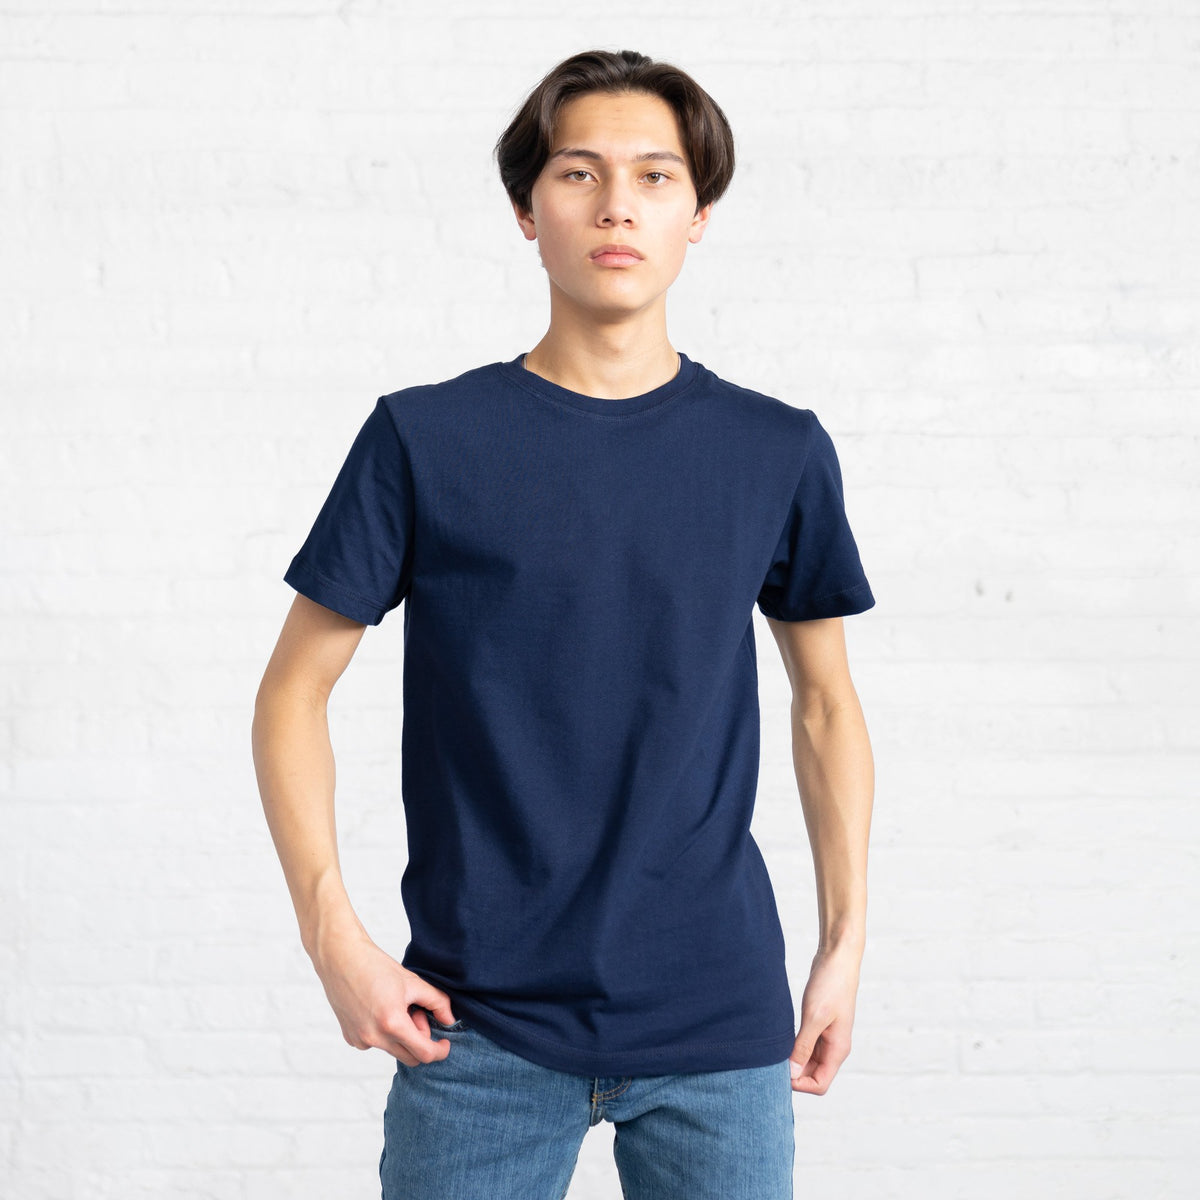 Color:Navy Fitted Combed Cotton Men's T-shirts